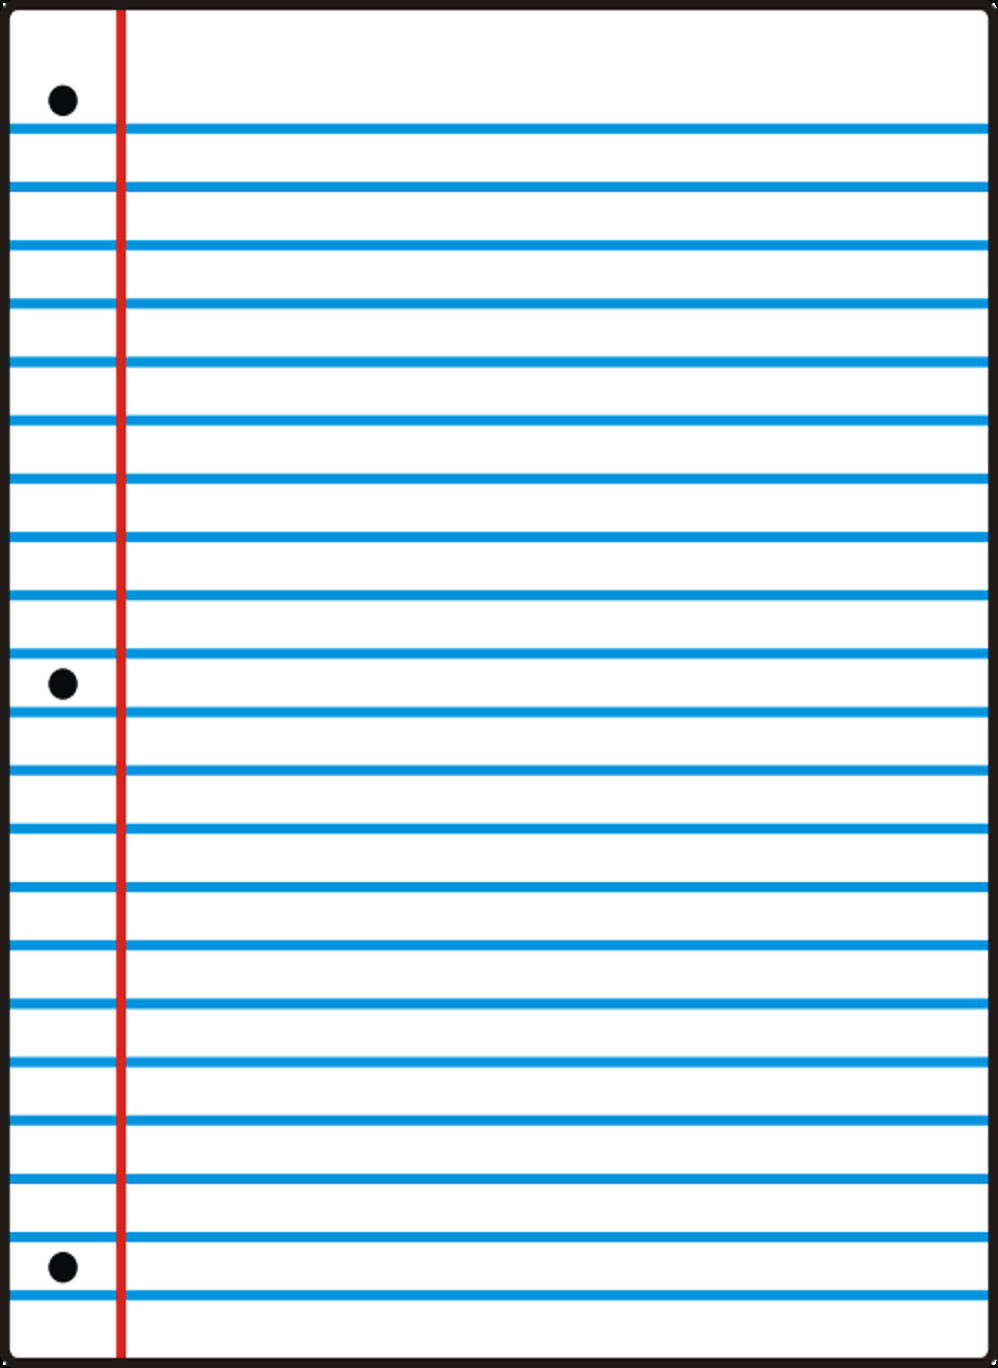 Notebook Paper Template For Word - Clip Art Library Pertaining To Notebook Paper Template For Word